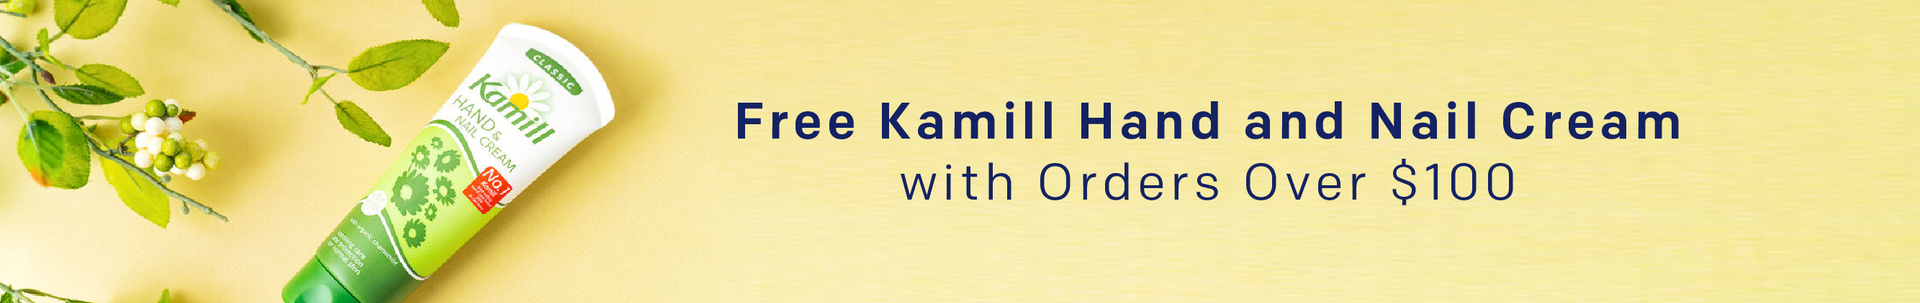 Free Kamill Hand and Nail Cream with Orders Over $100